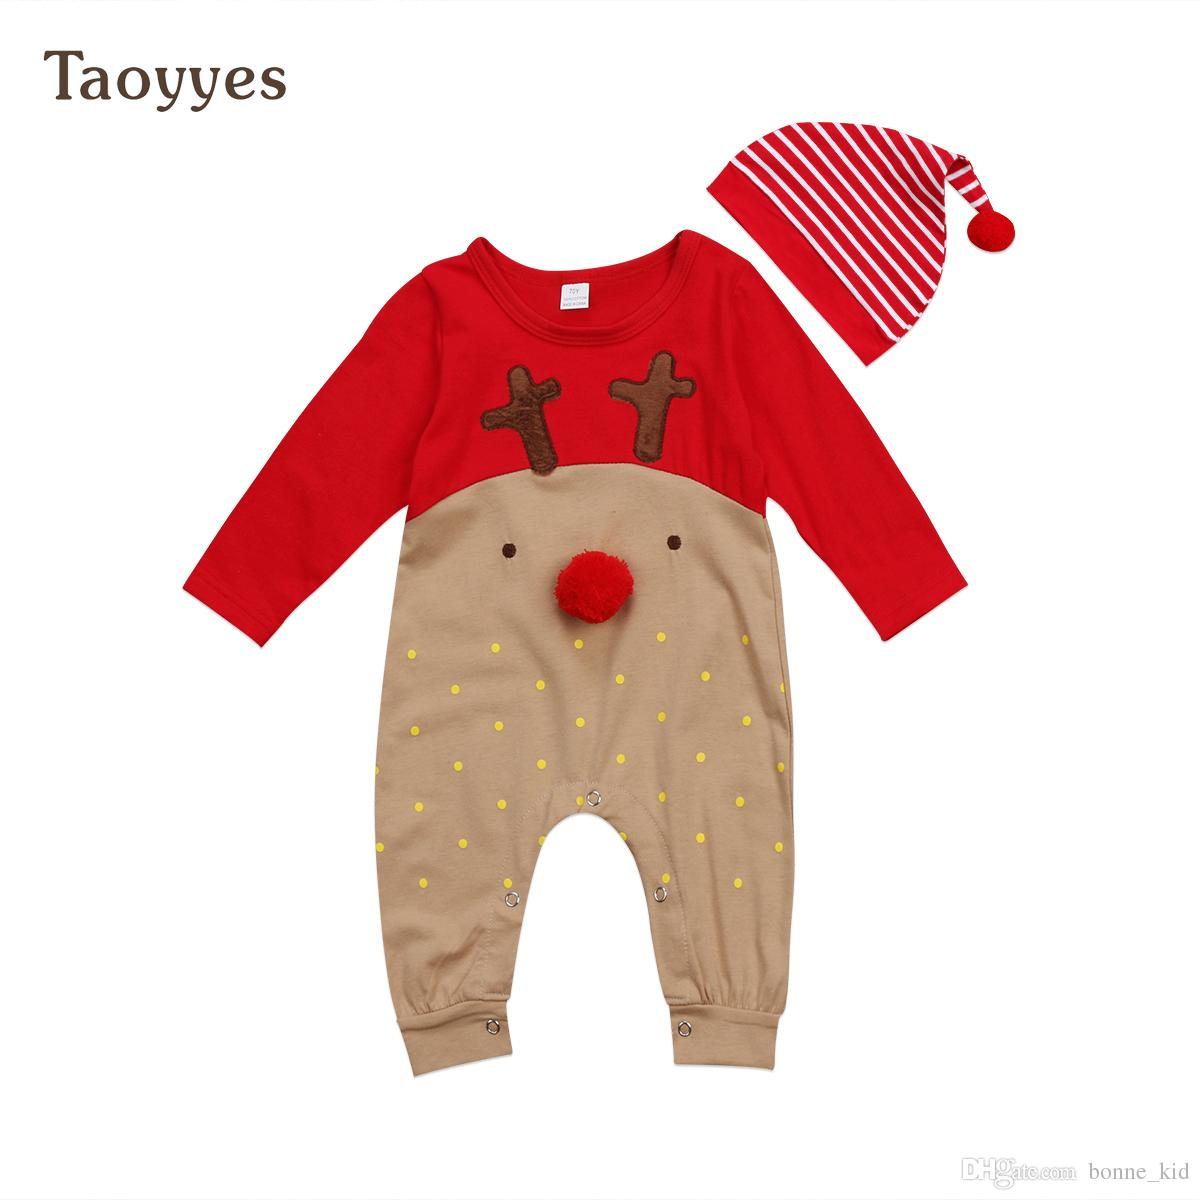 6579560ce 2019 Christmas Baby Boys Girls Reindeer Rompers Jumpsuits Clothes Outfits  Striped Hat Set Newborn Infant Dots Pajamas Xmas Baby Clothing From  Bonne_kid, ...